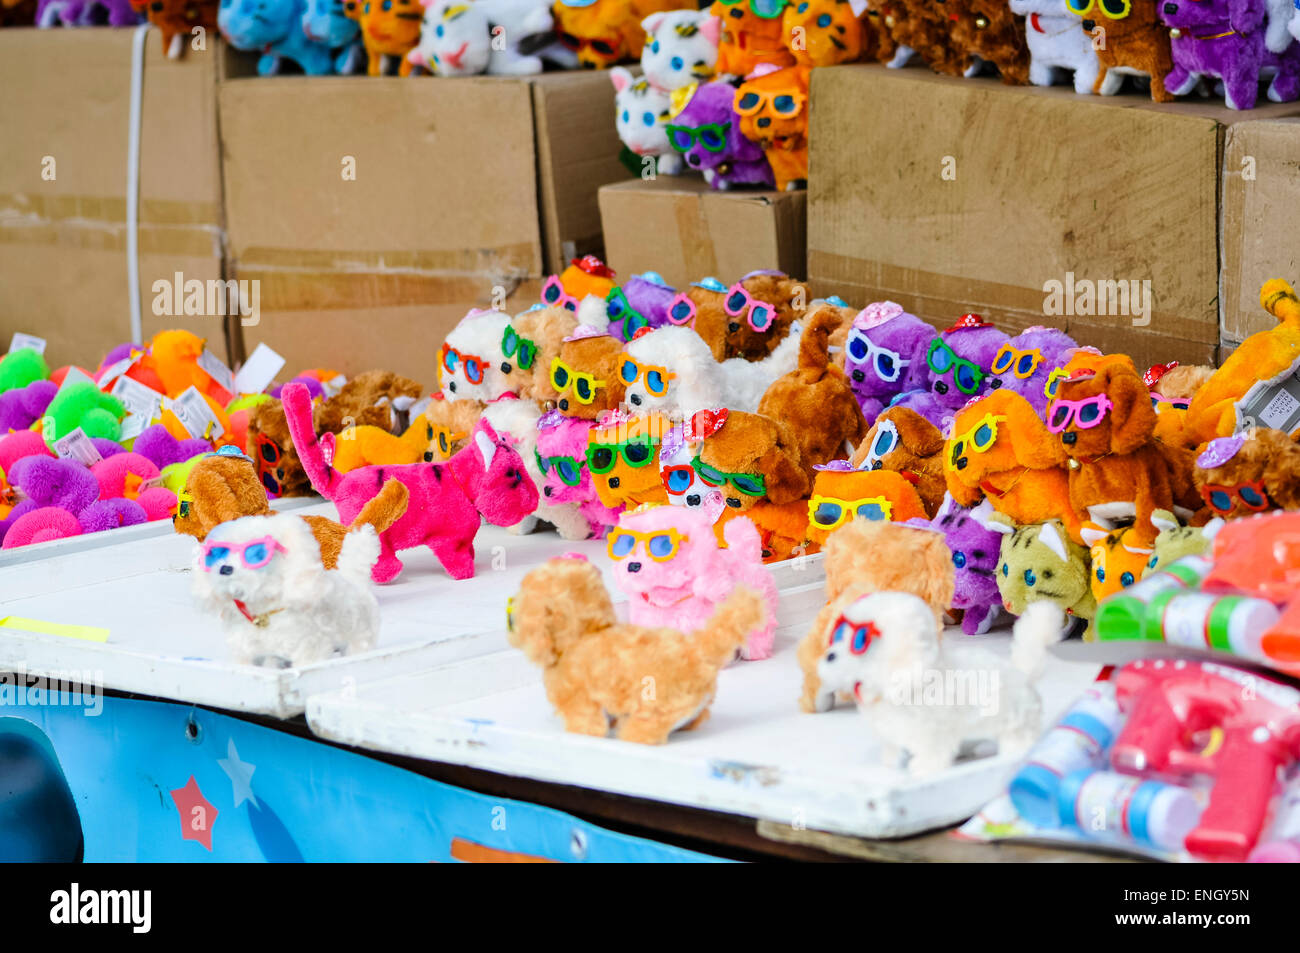 Colourful toy barking dogs on sale at a shop - Stock Image